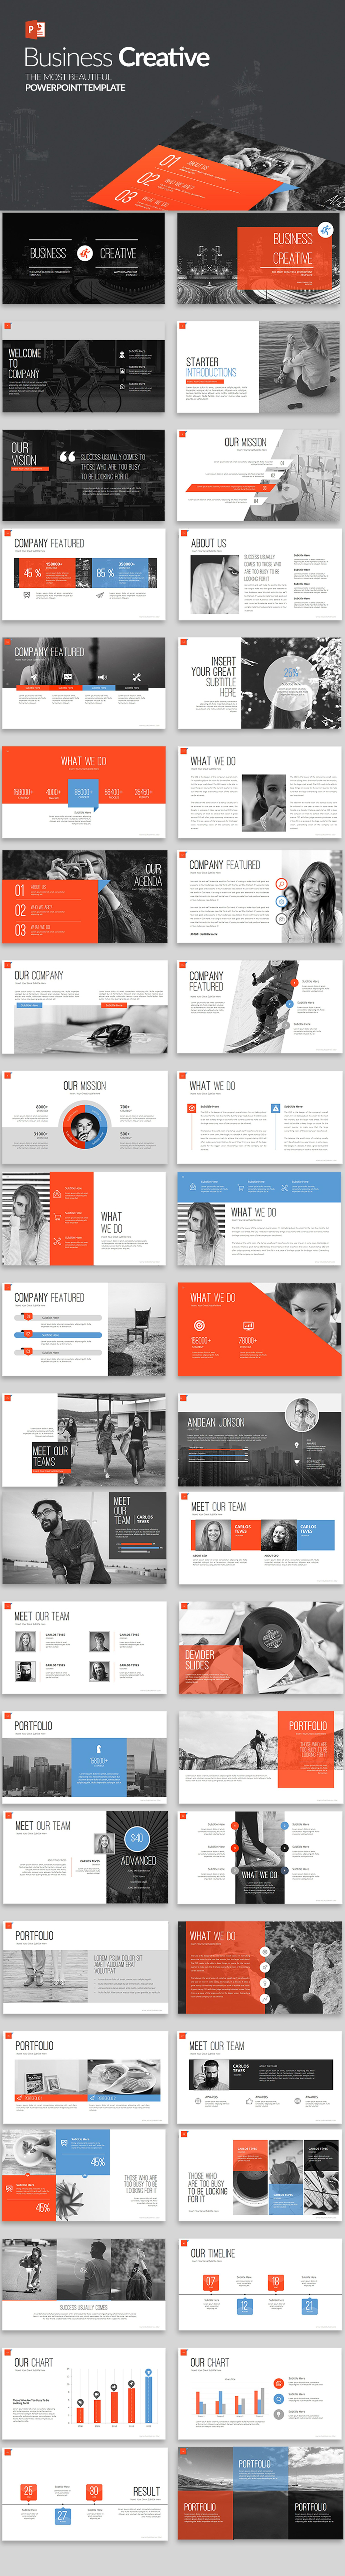 Business Creative Powerpoint Template  Powerpoint Resume Template